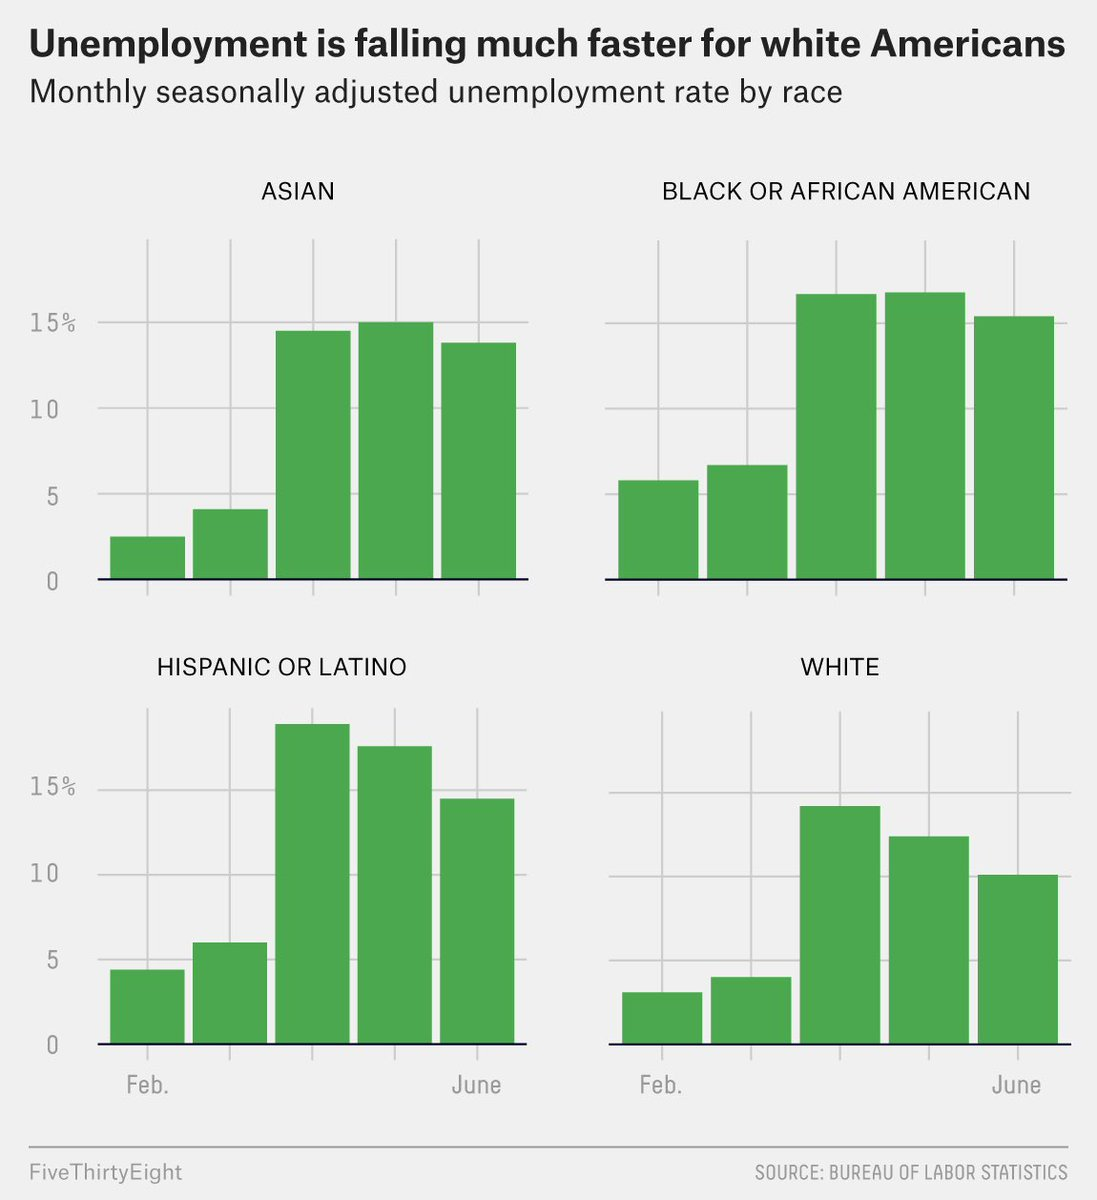 Black people have been more likely to die from Covid. Black businesses were more likely to be excluded from government relief. Black workers are more likely to be unemployed and less likely to be rehired. Structural racism at every level. https://t.co/kshZrdLsFf https://t.co/fsbOxRK5Hb